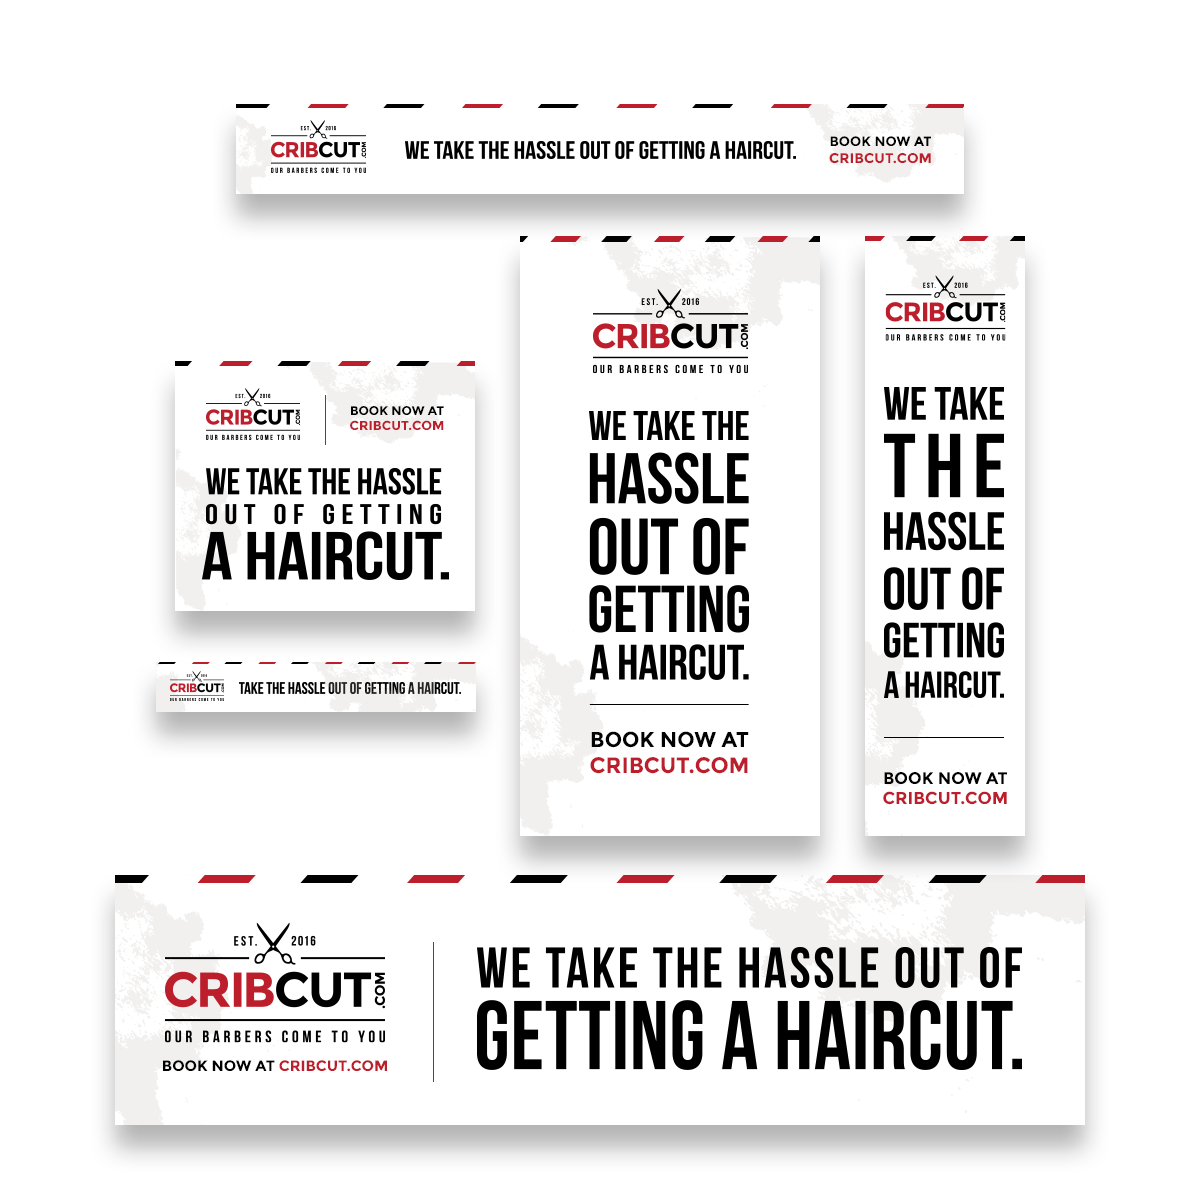 Haircut banner ad design